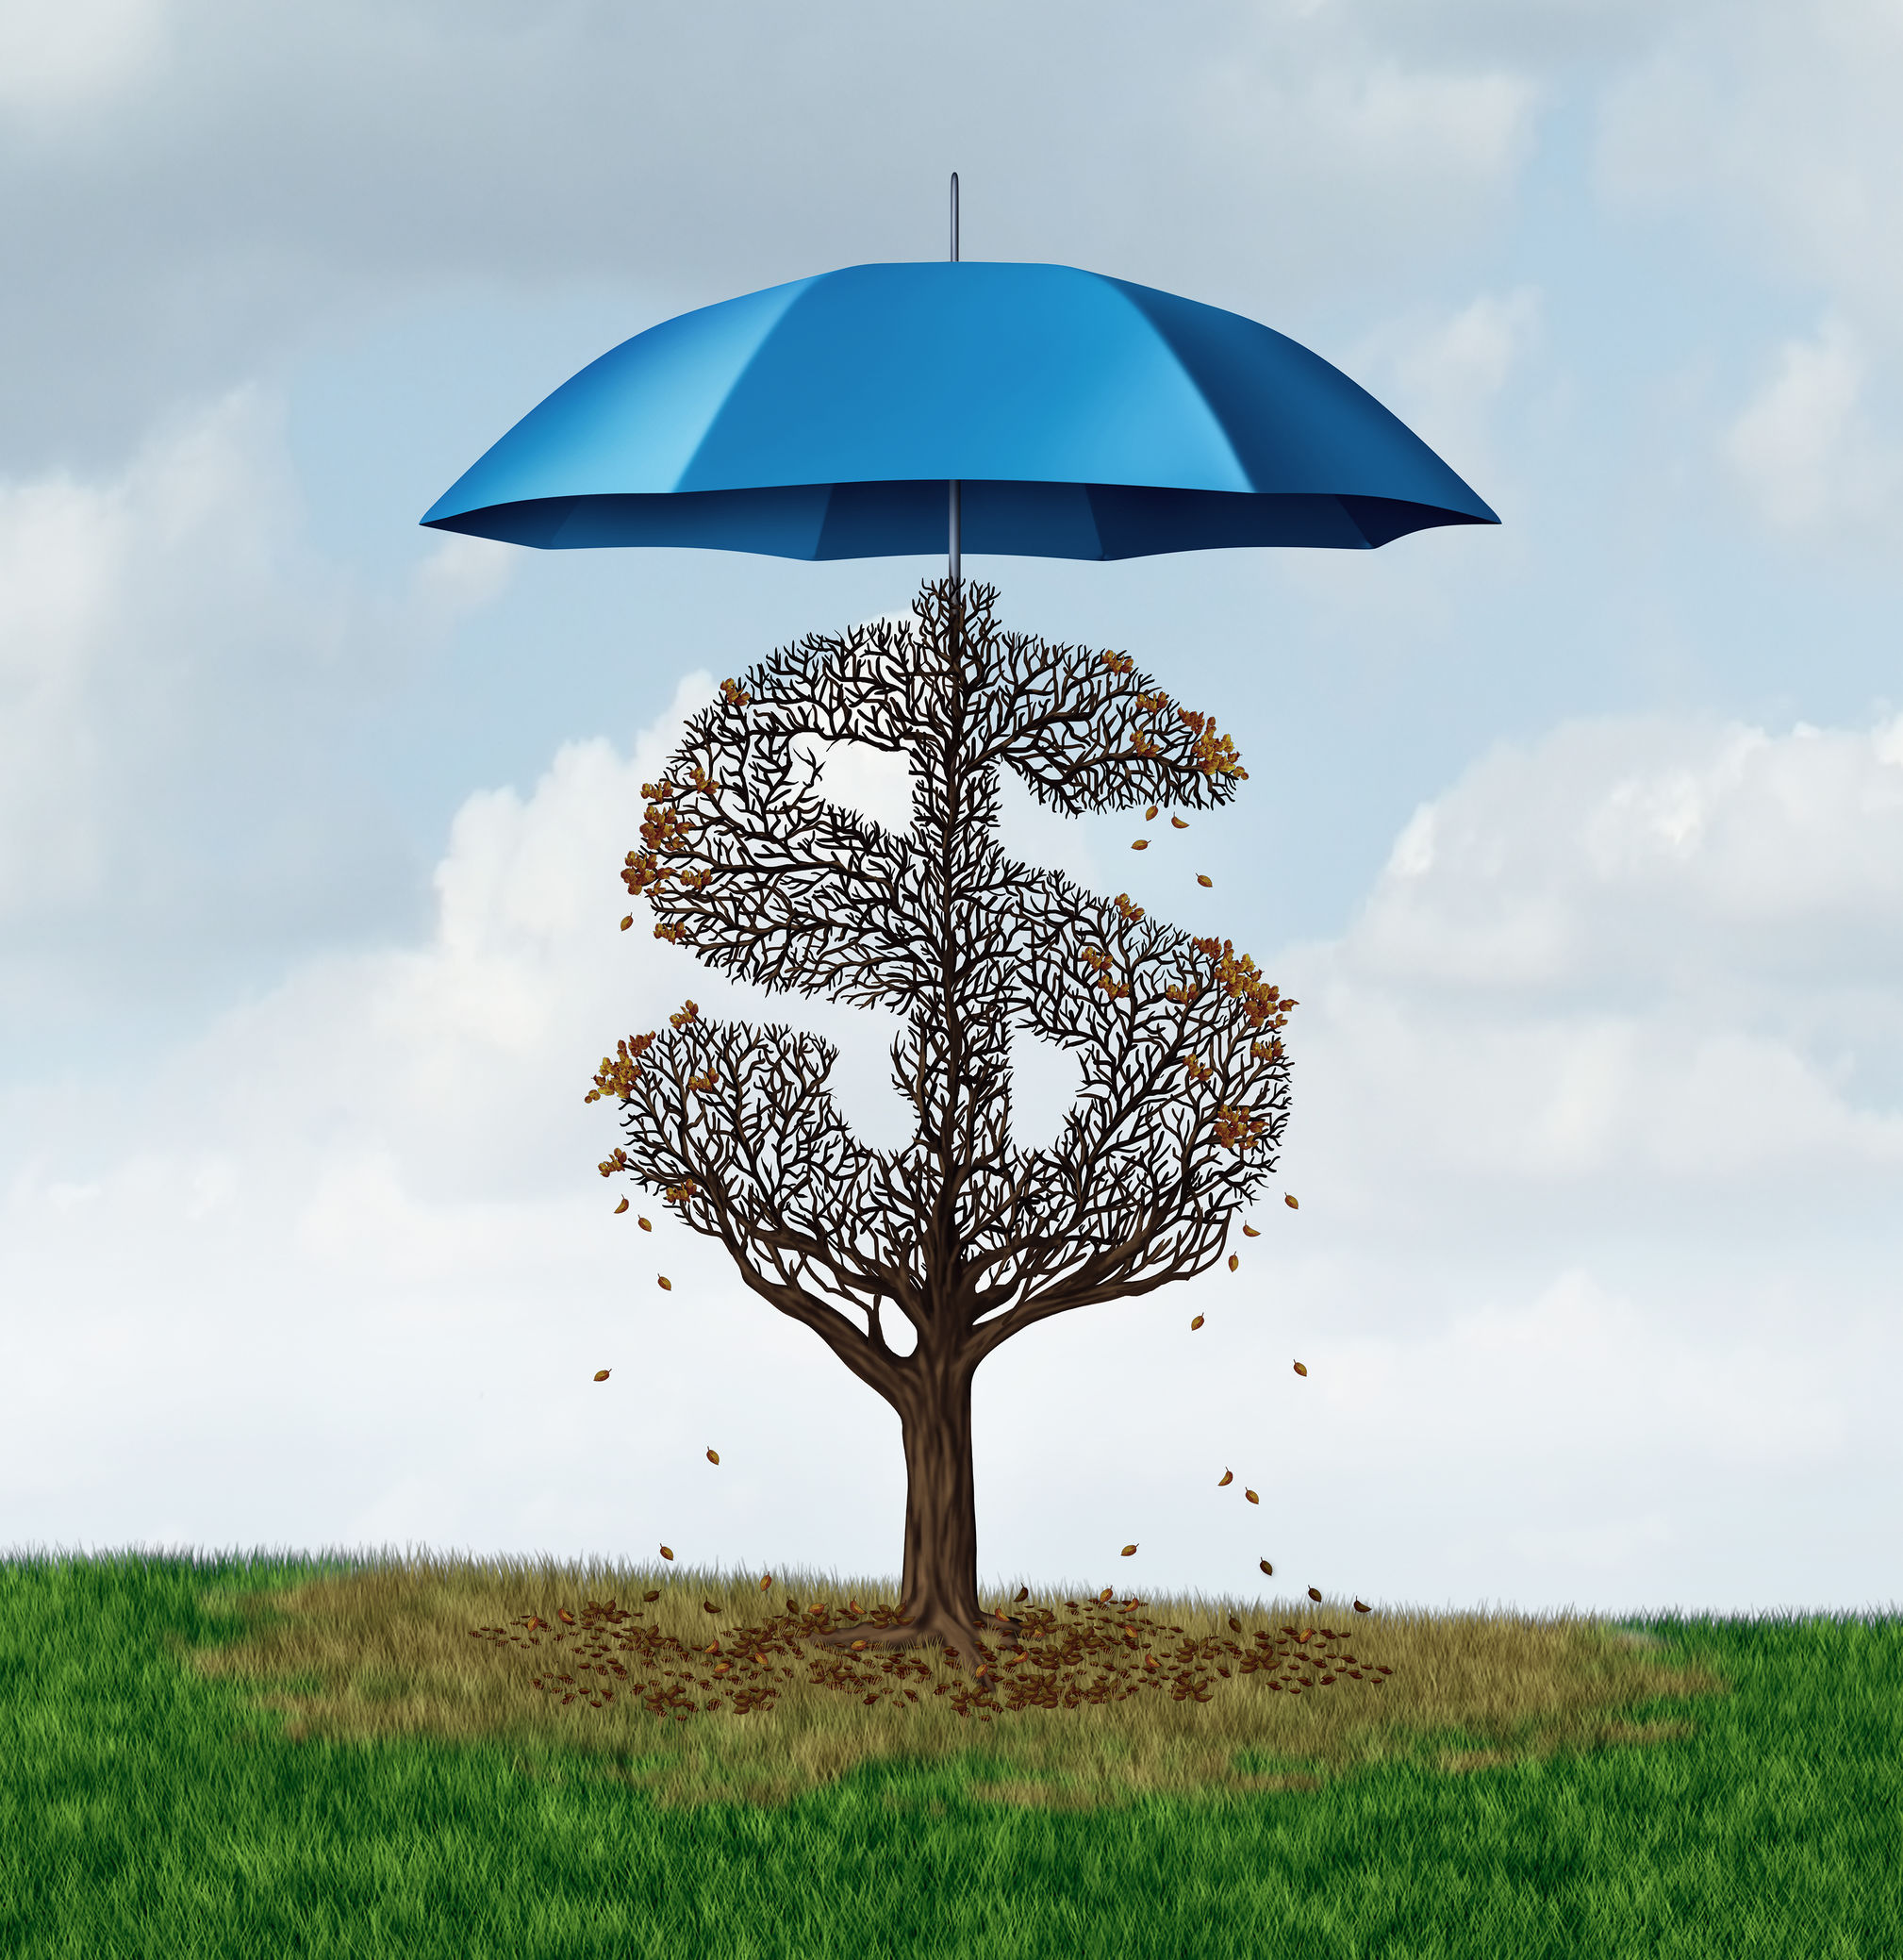 Economic protectionism policy and financial closed trade restrictions as a tree shaped as a money dollar sign losing leaves due to a security umbrella blocking needed sun and rain resulting in business damage and disadvantage.